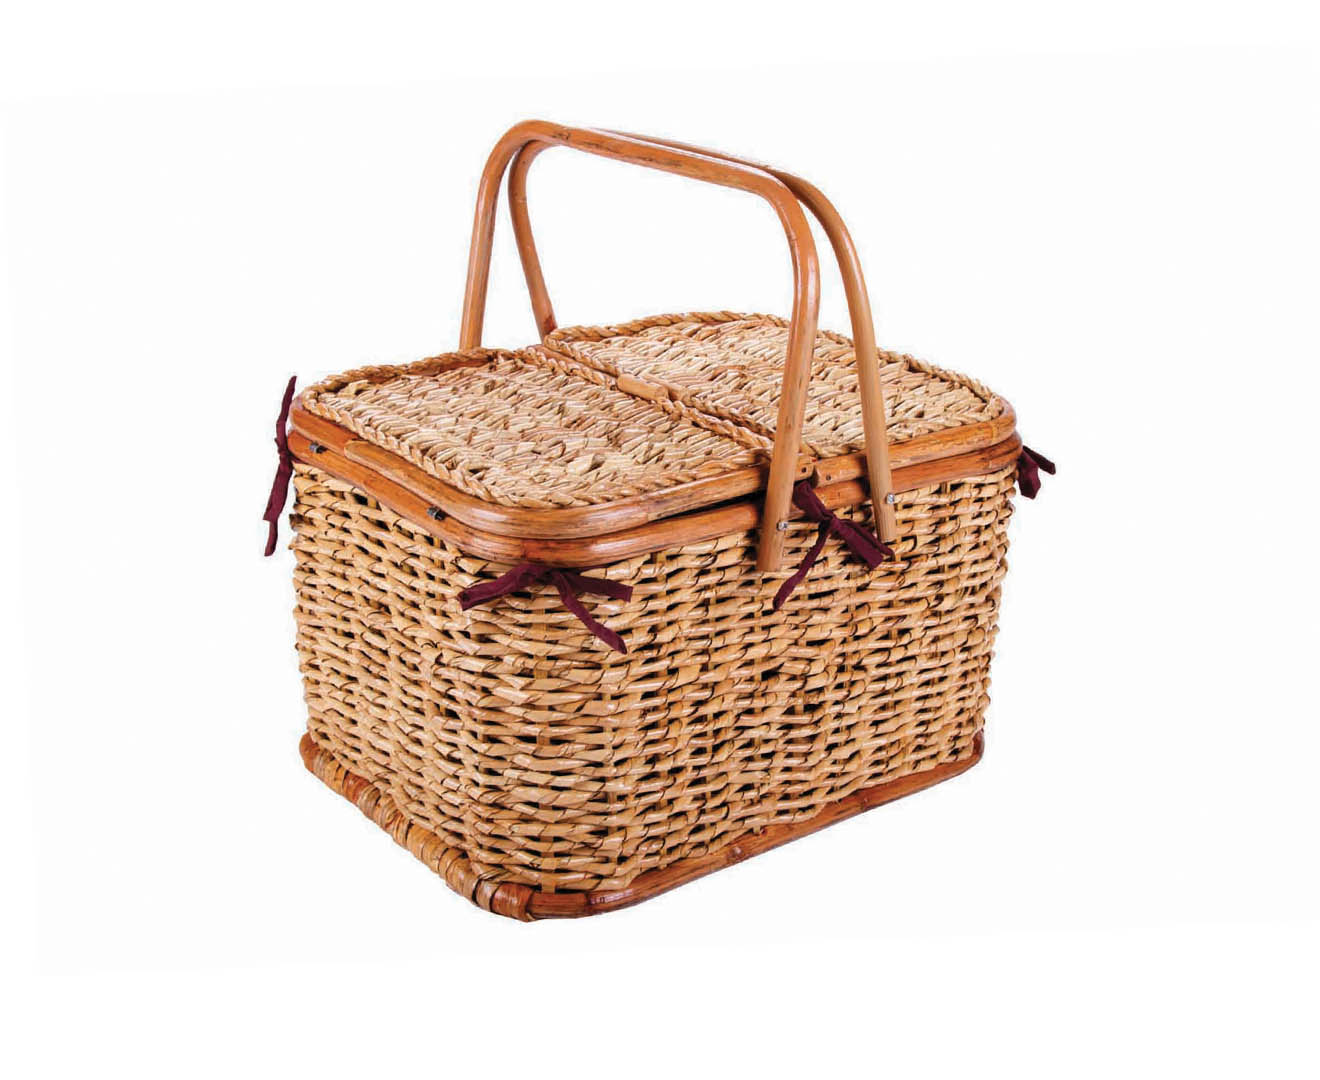 Aldi Picnic Basket Australia : Bamboo cane person picnic basket natural great daily